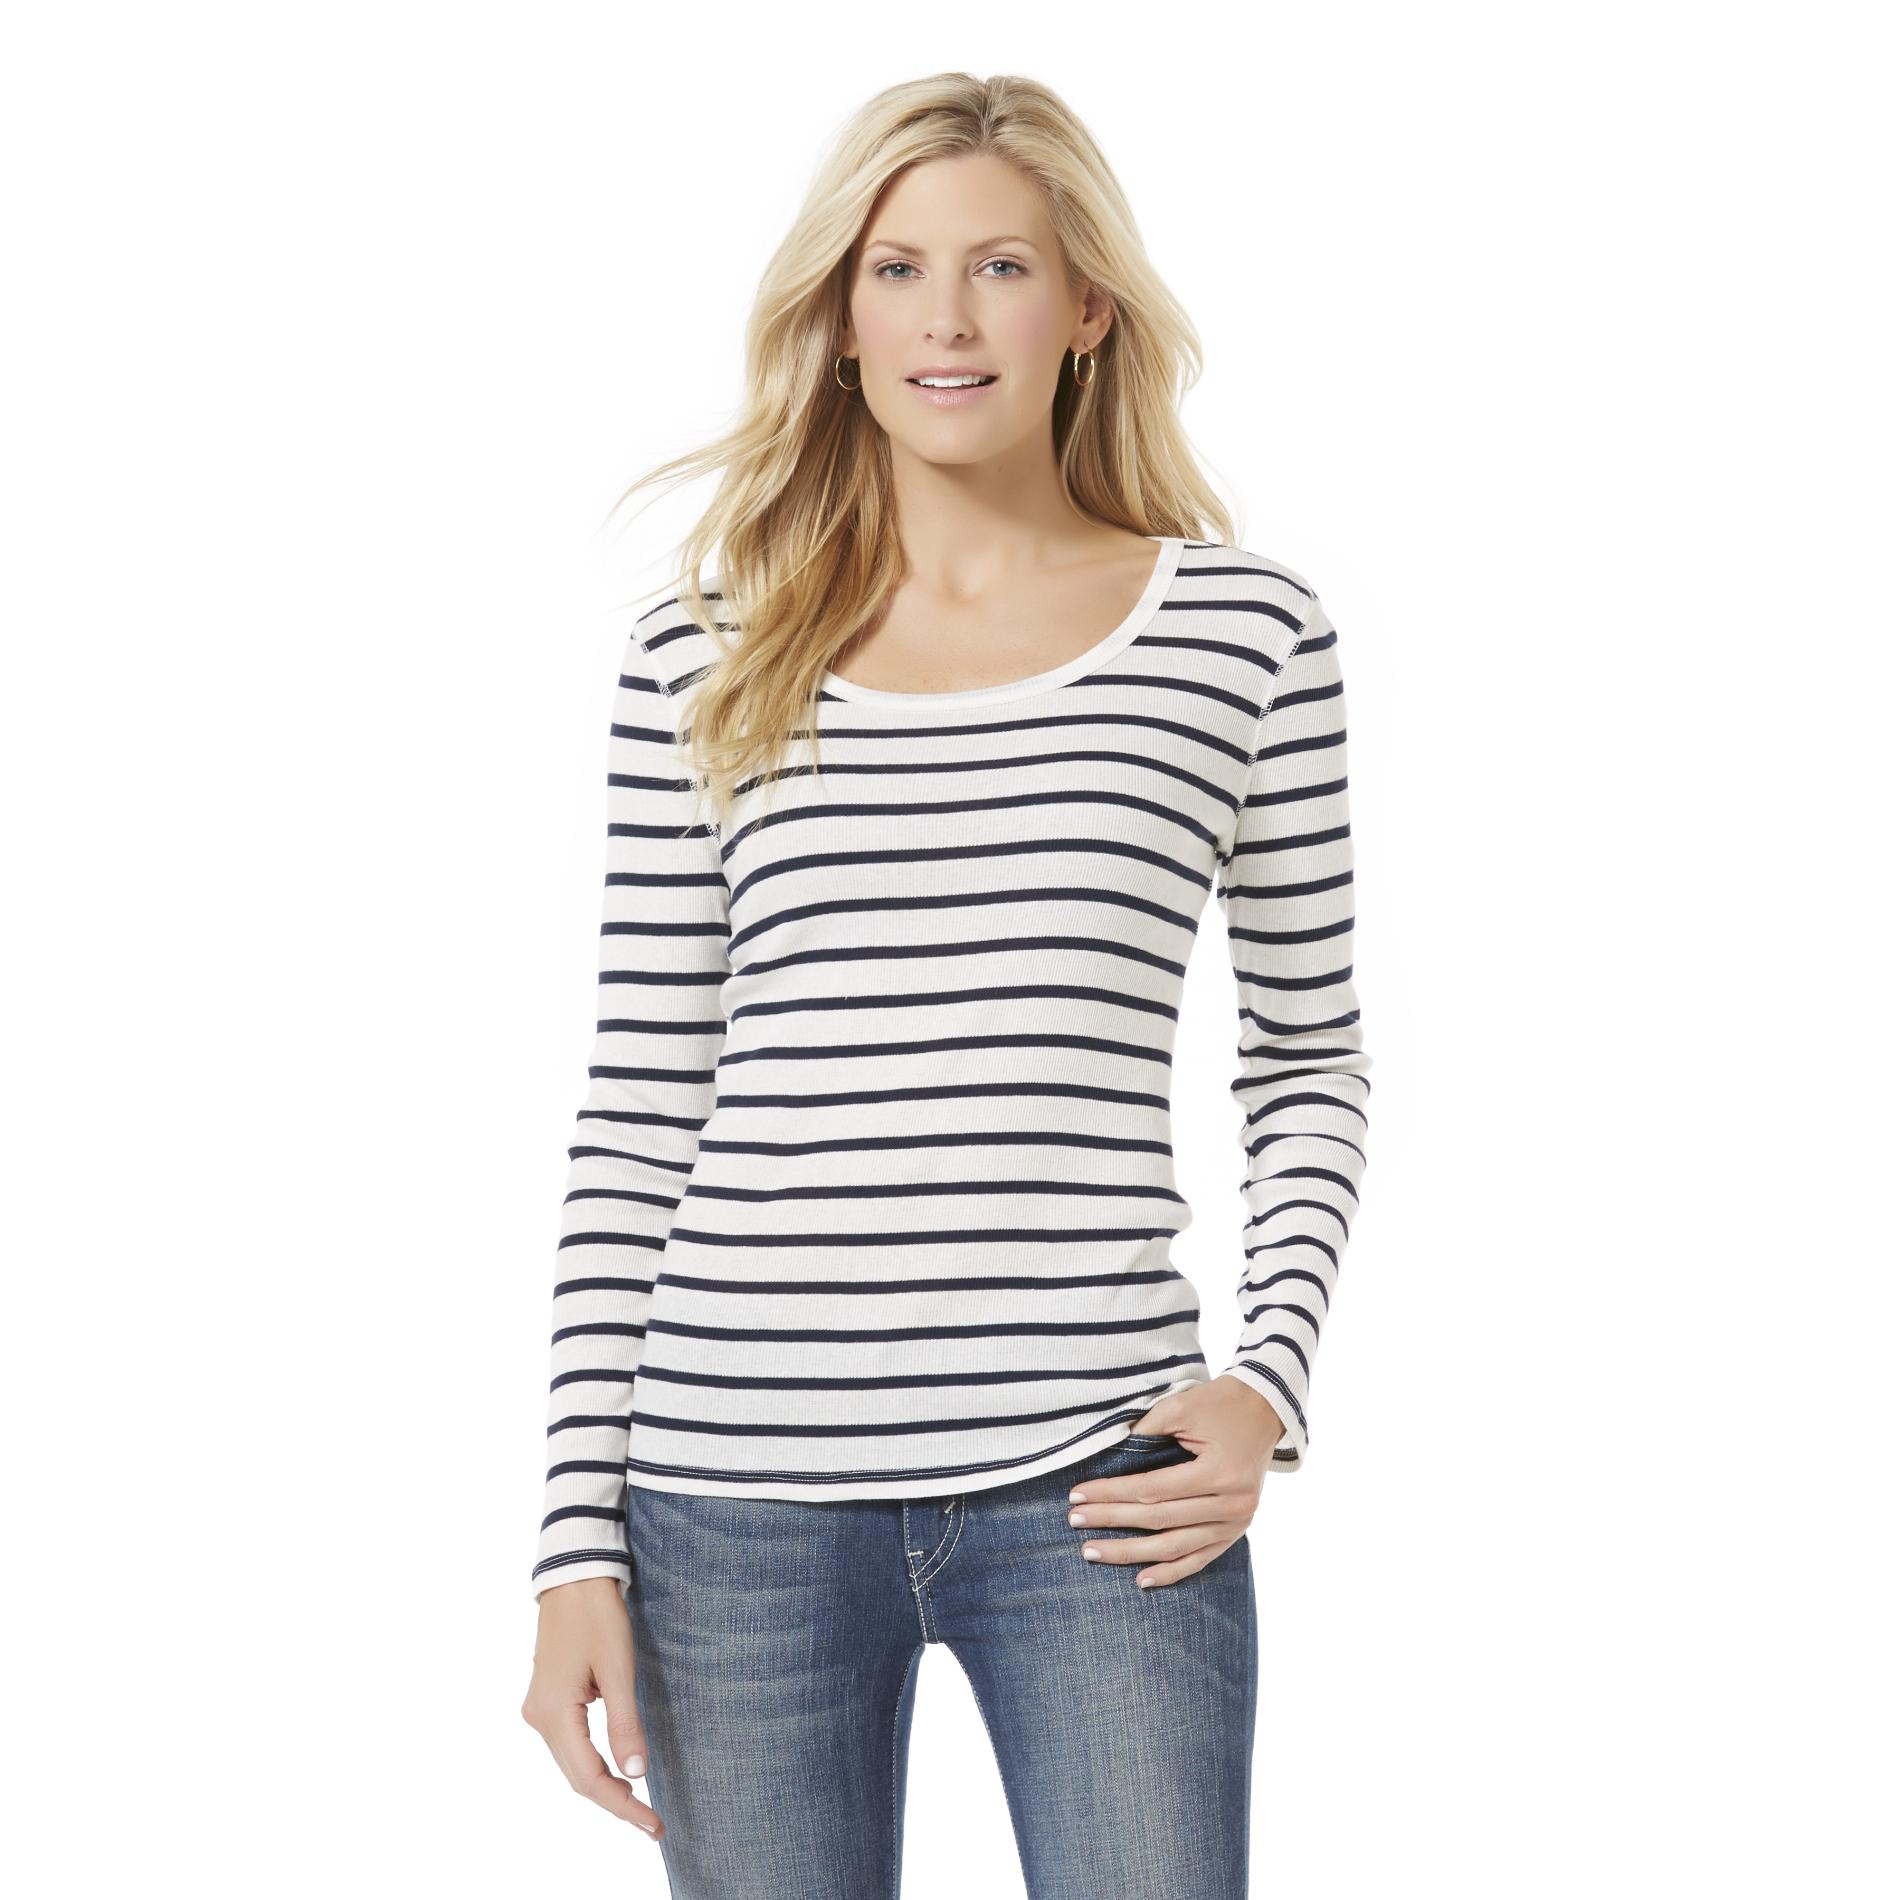 Basic Editions  Women's Scoop Neck T-Shirt - Striped